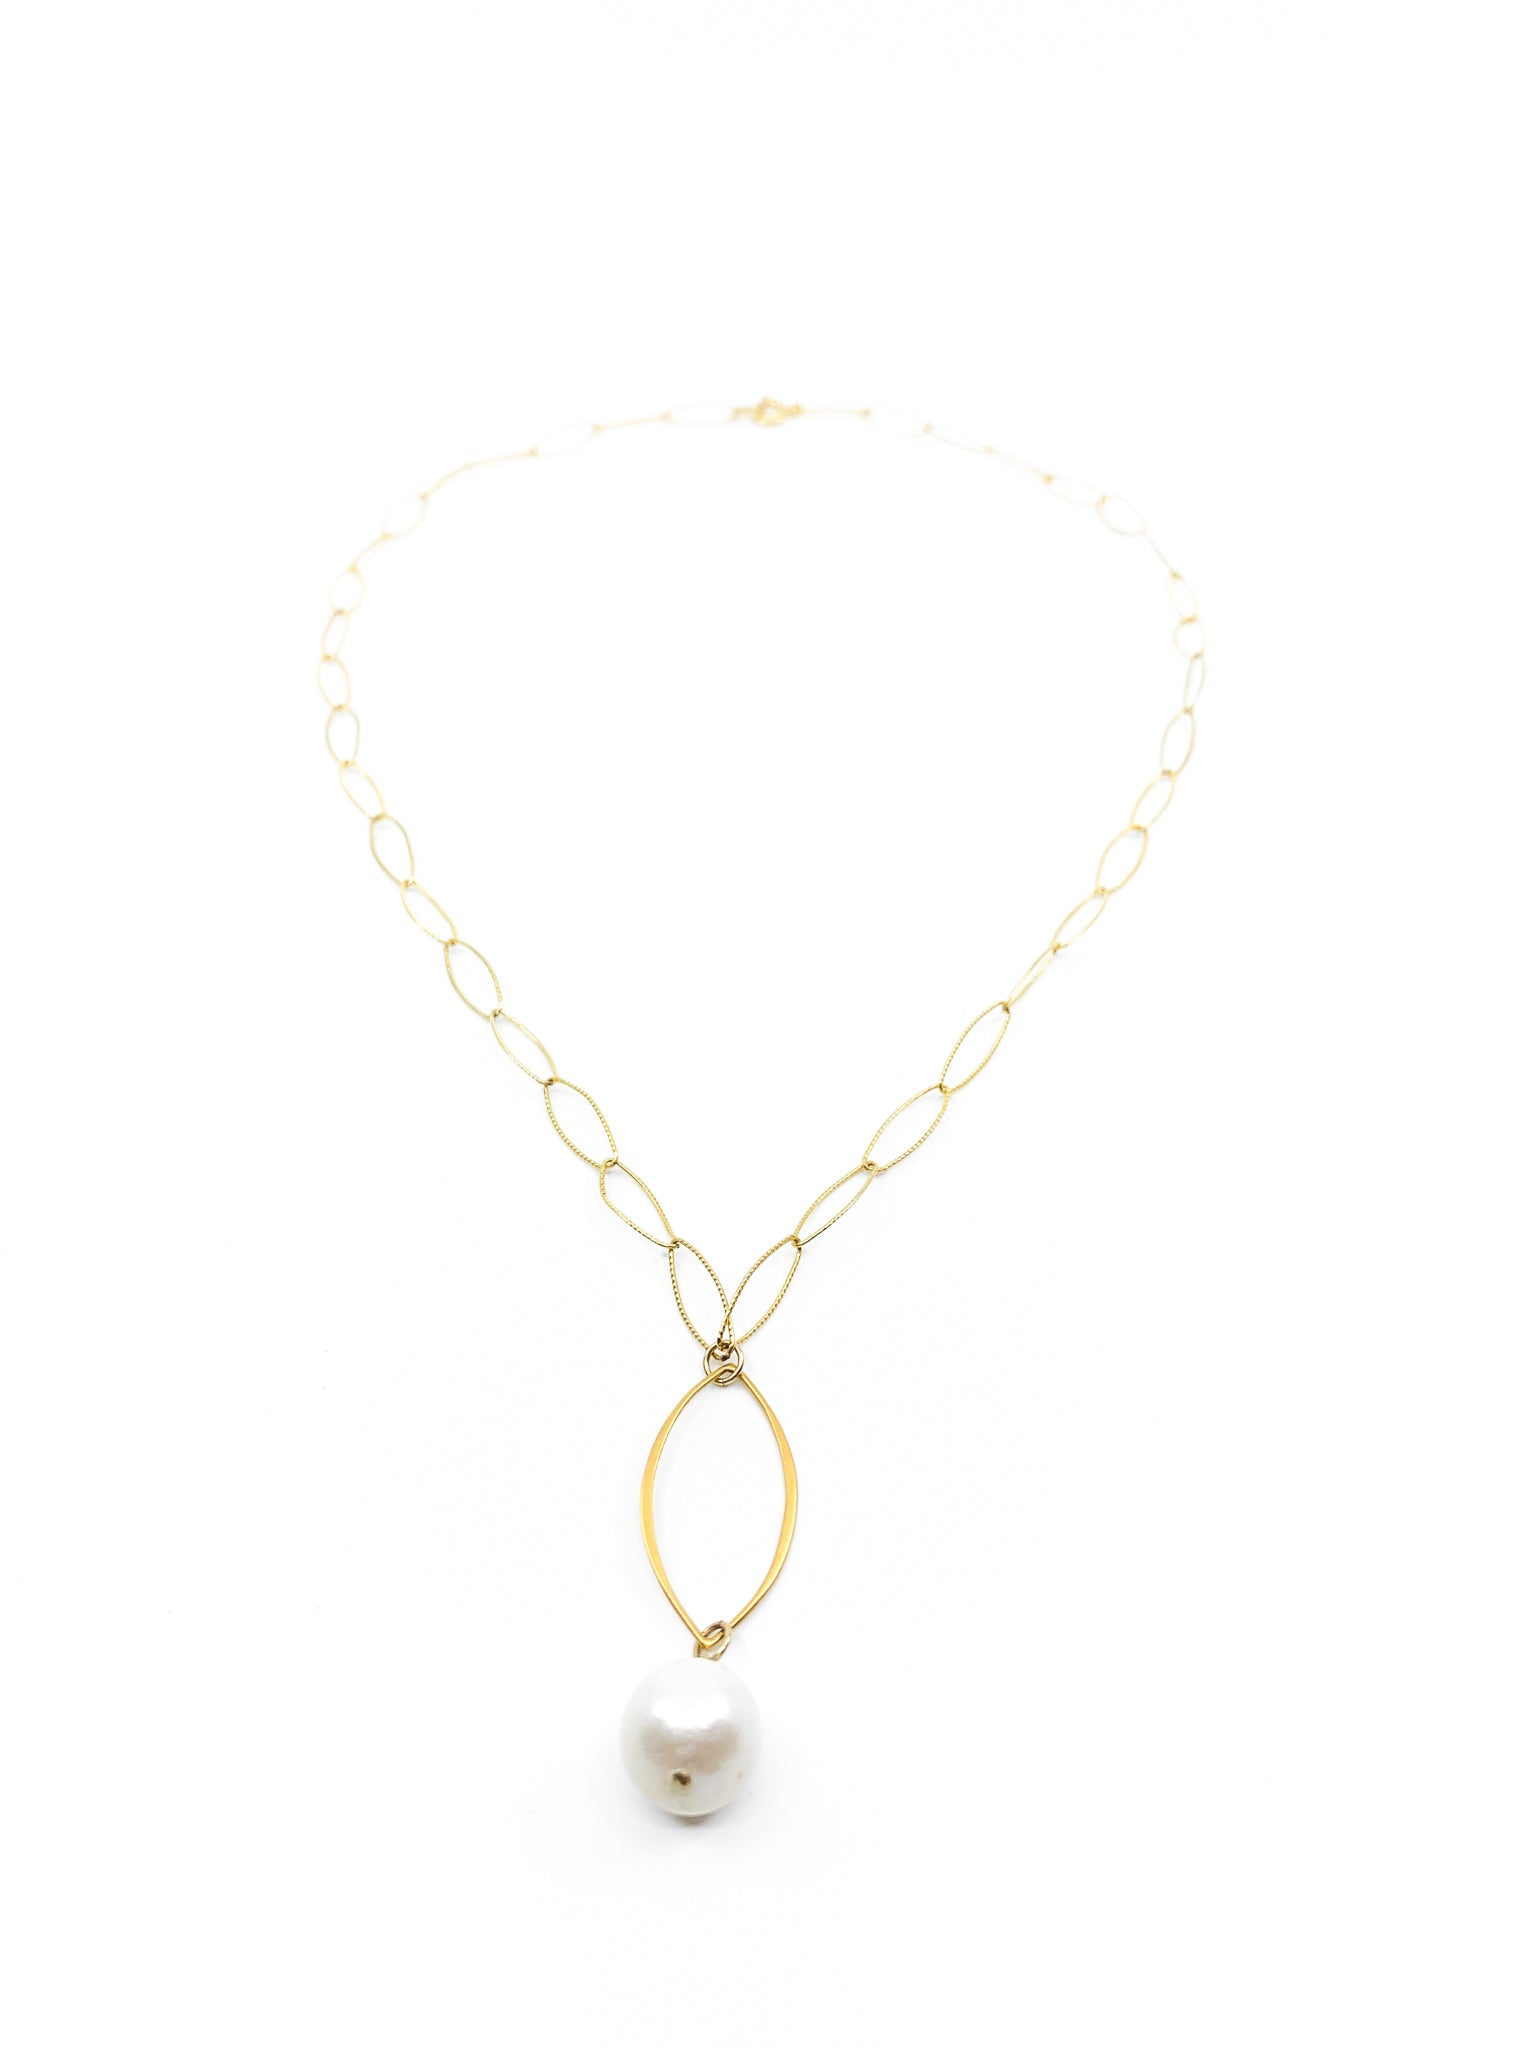 white pearl gold marquee chain necklace by eve black jewelry made in Hawaii